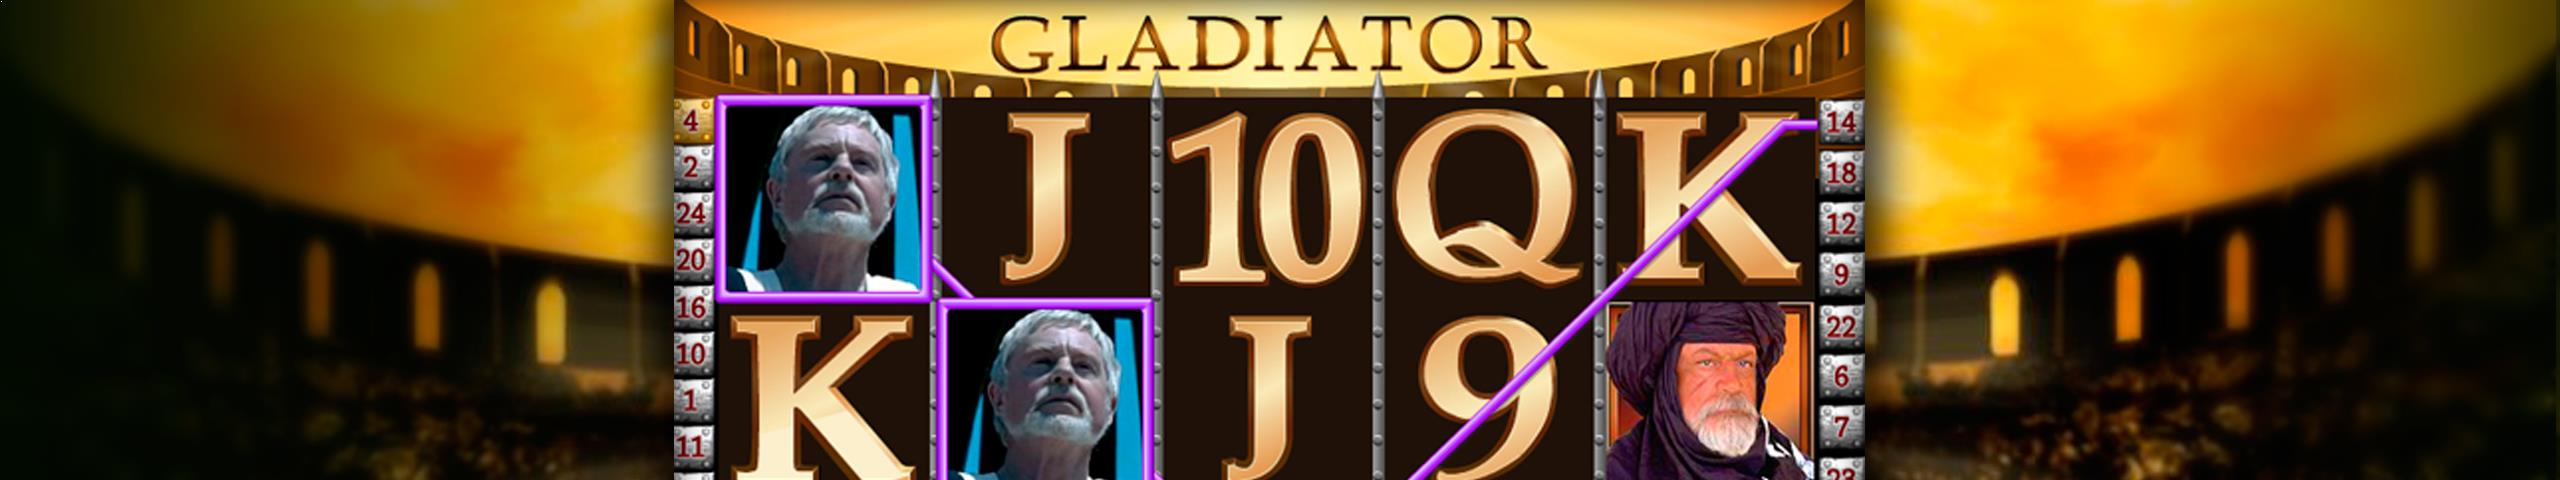 Gladiator Playtech multabafta jocuri slot slider